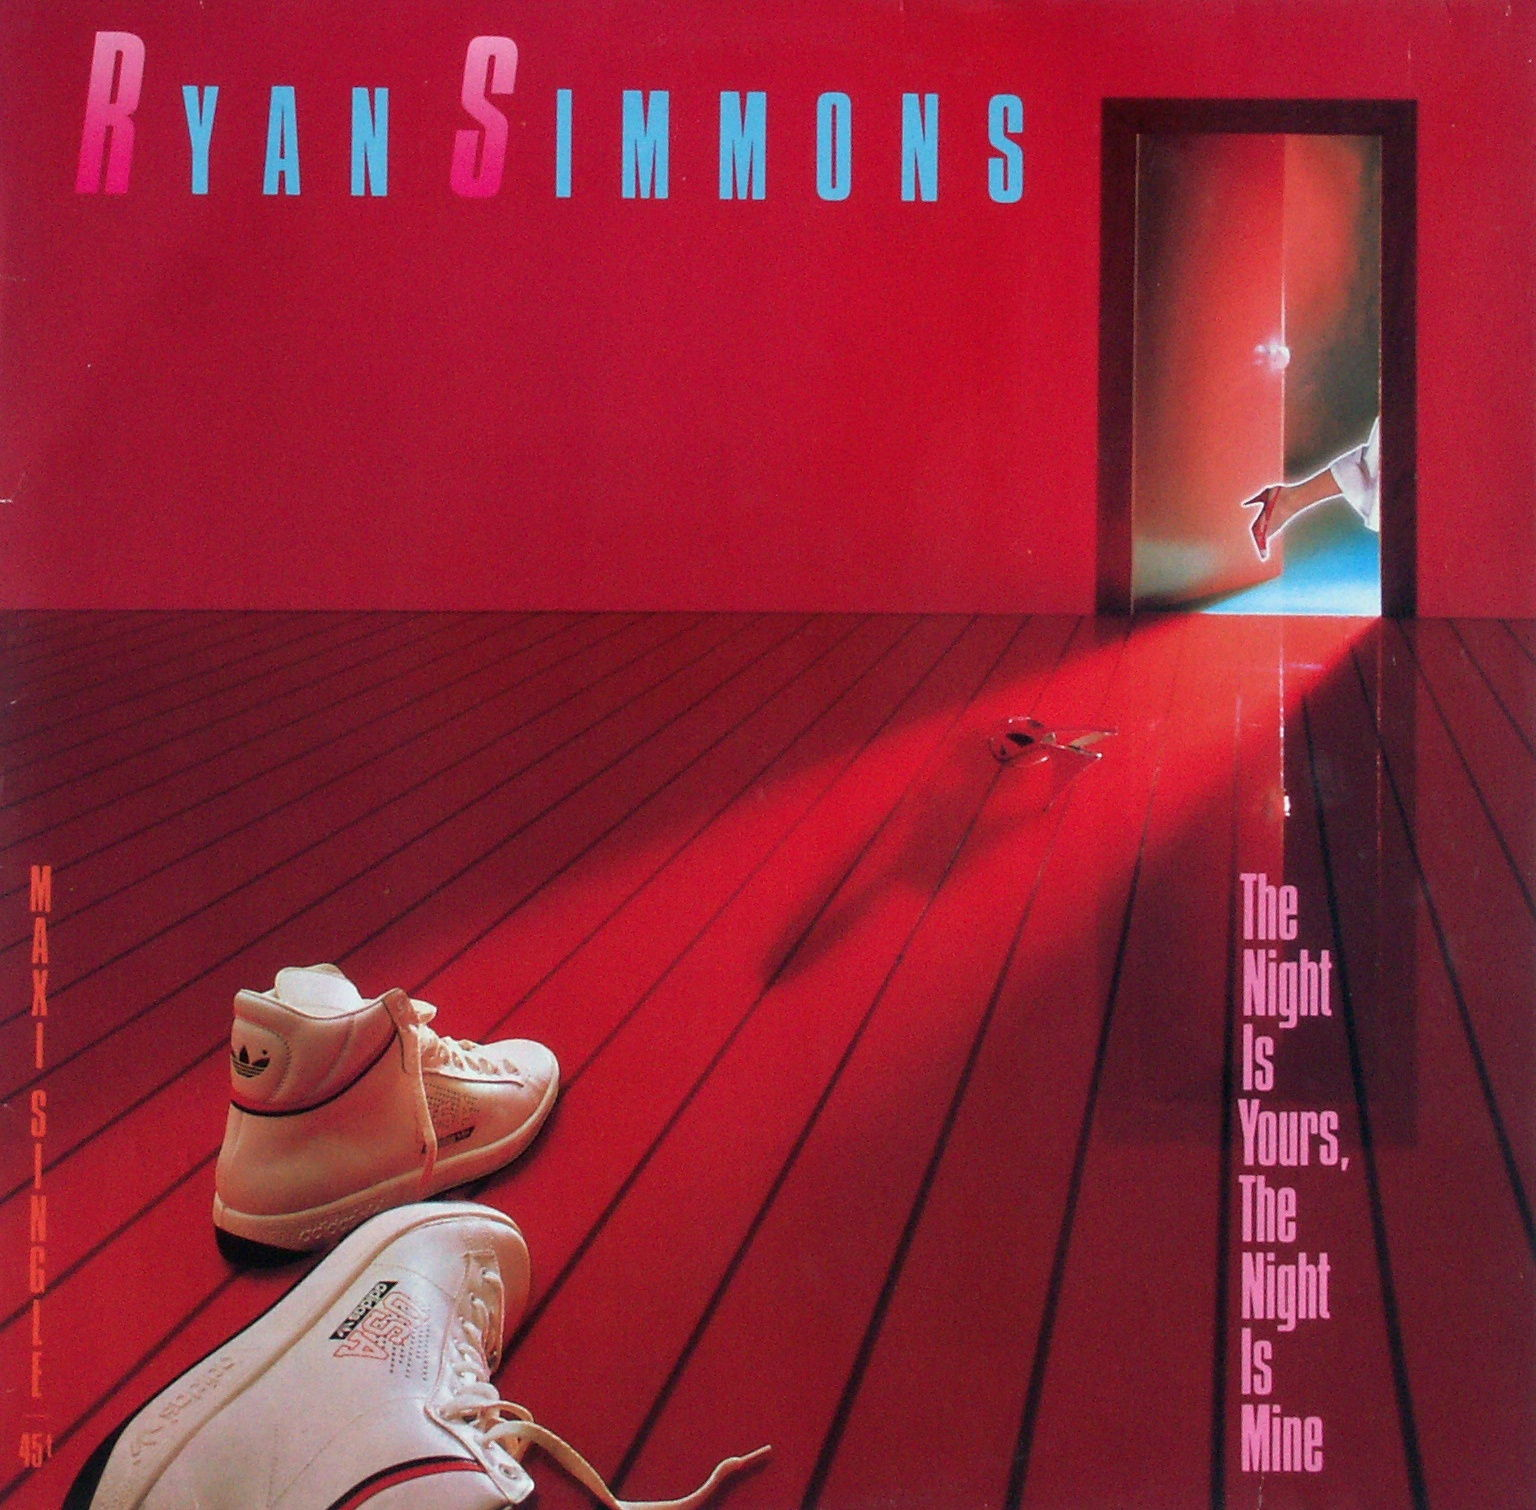 SIMMONS, RYAN - The Night Is Yours, The Night - 12 inch x 1